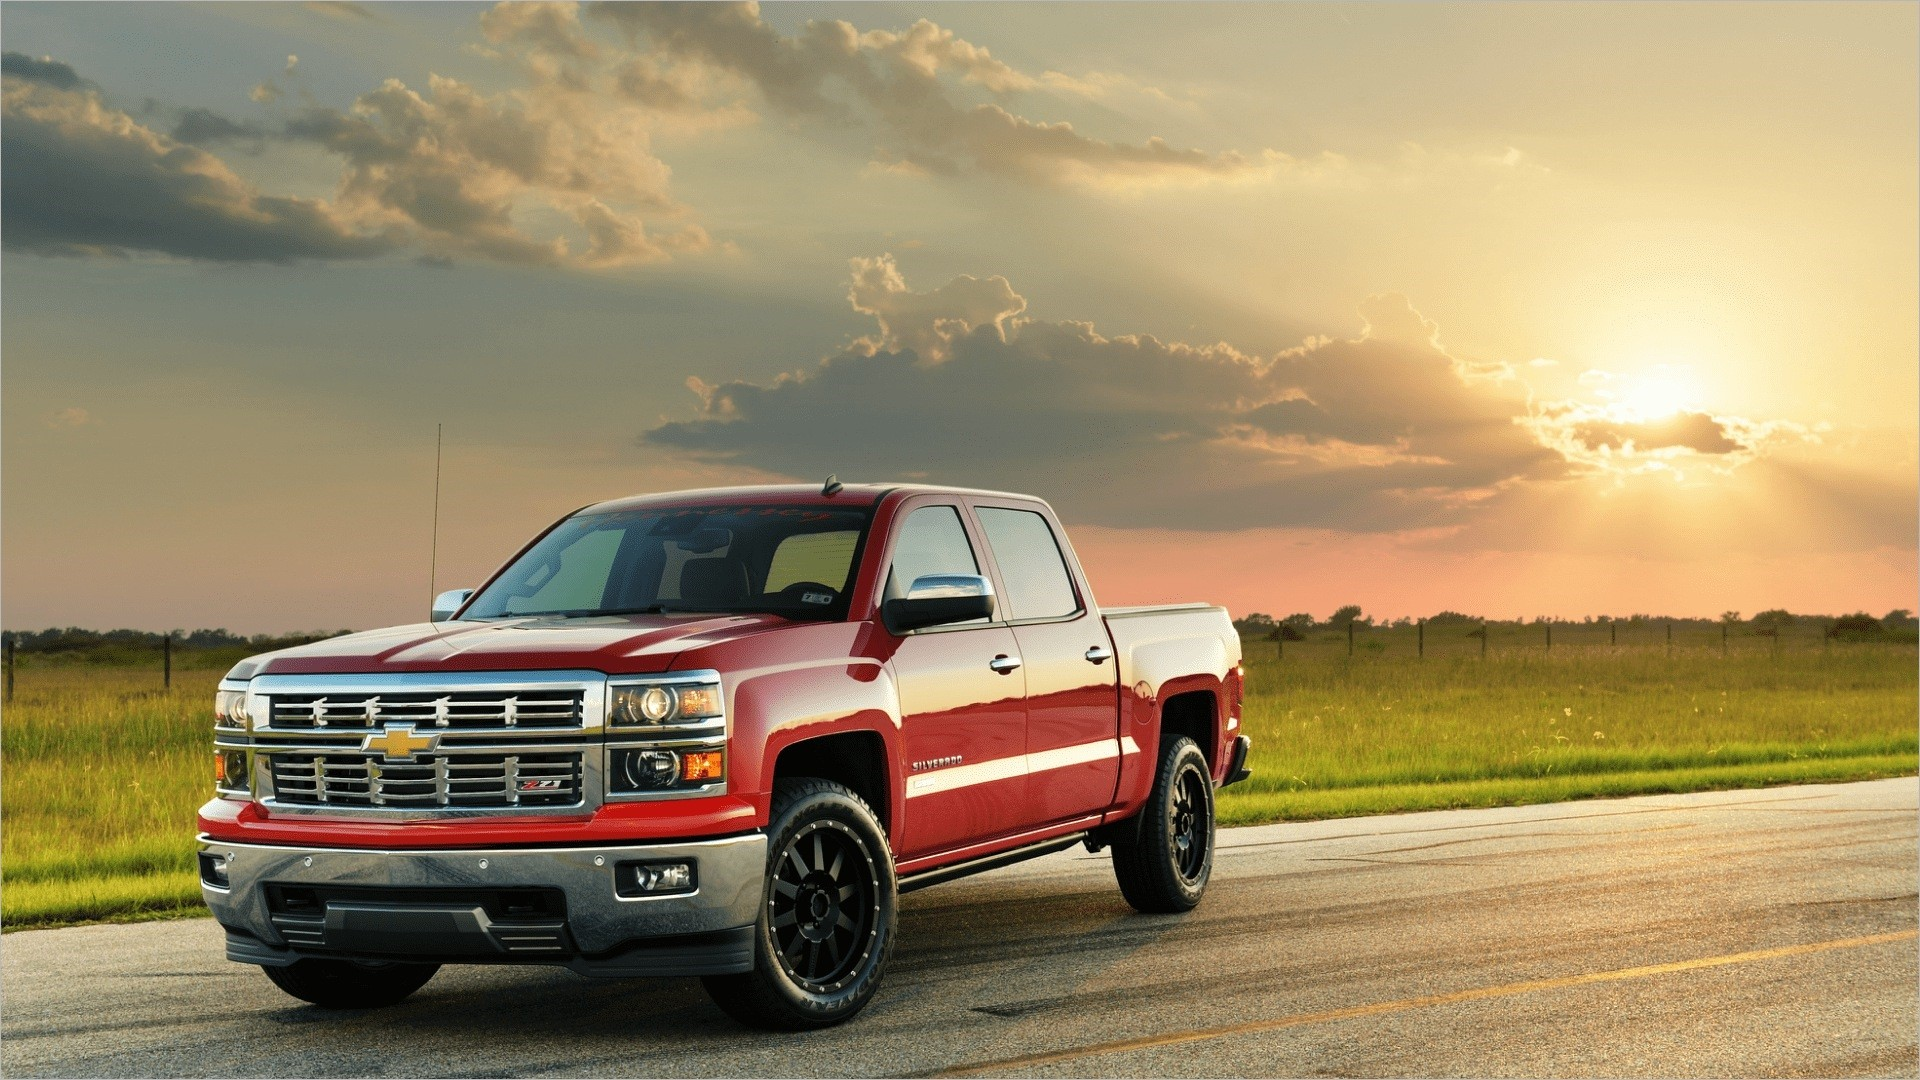 Silverado wallpaper photo full hd